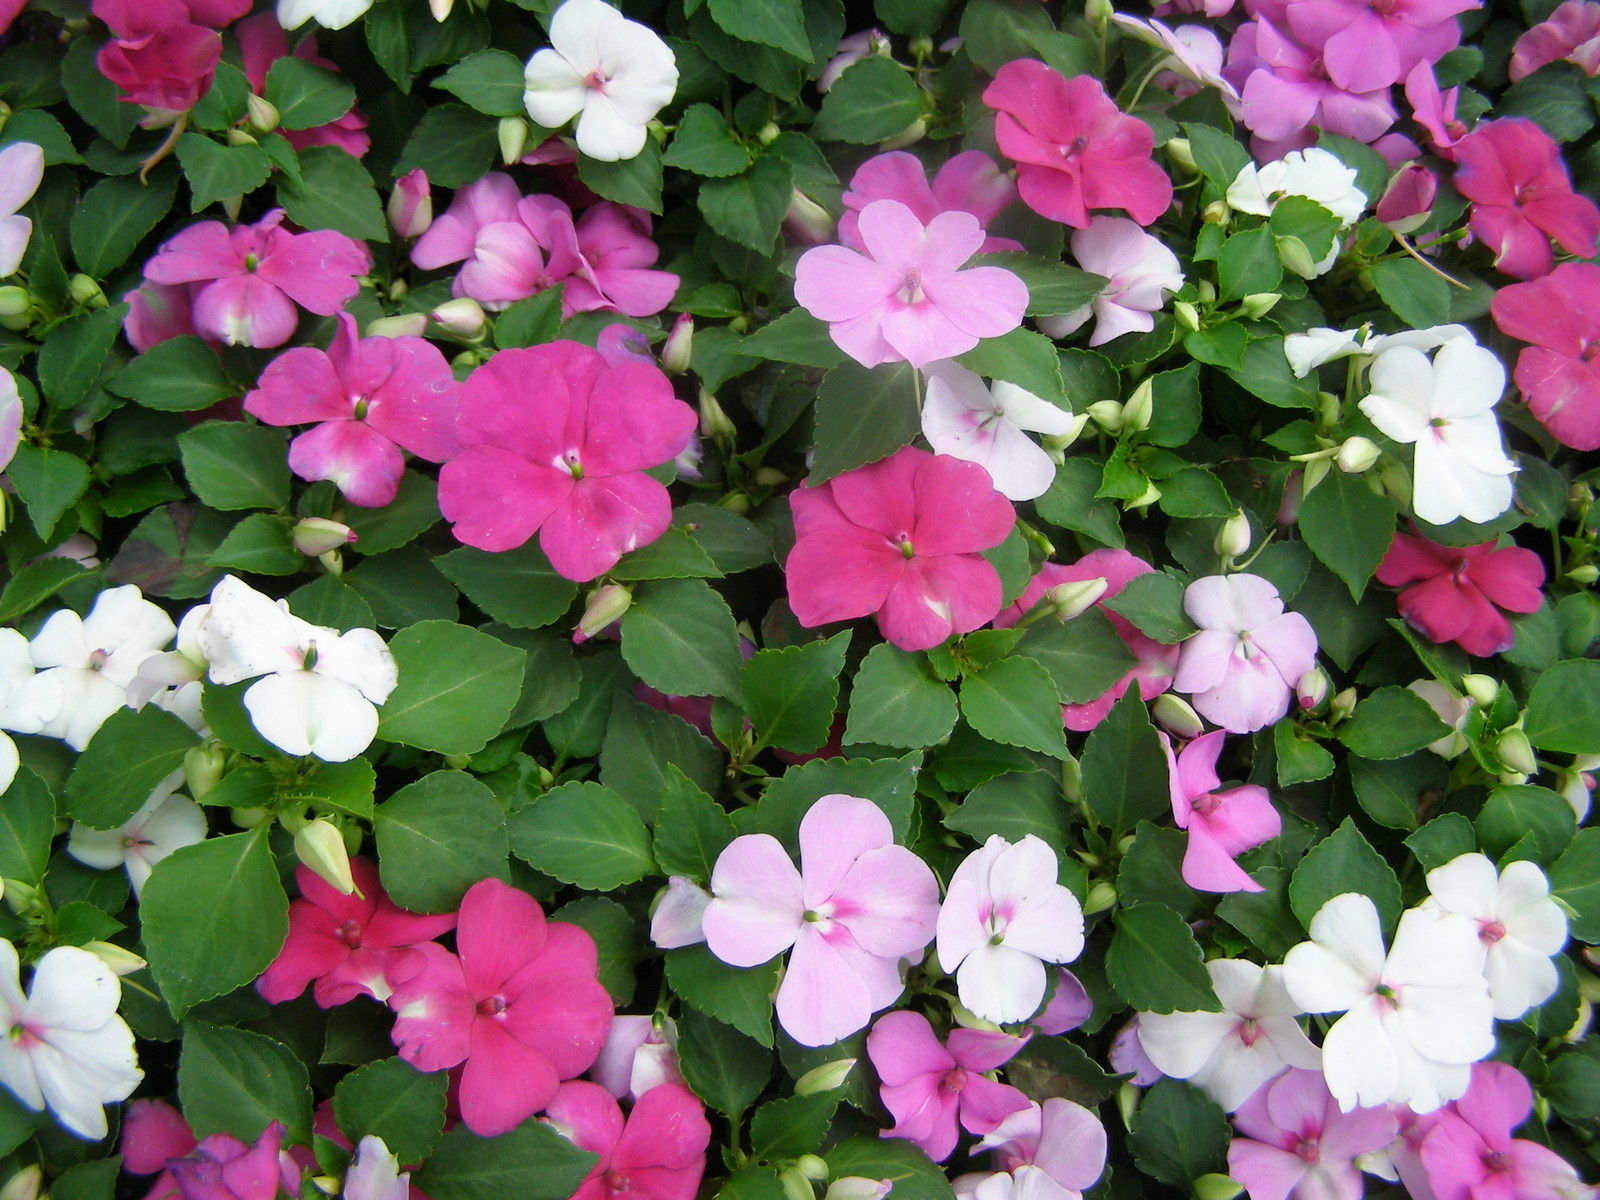 Impatiens mix flower seeds drought tolerant shade - Shade tolerant flowers ...